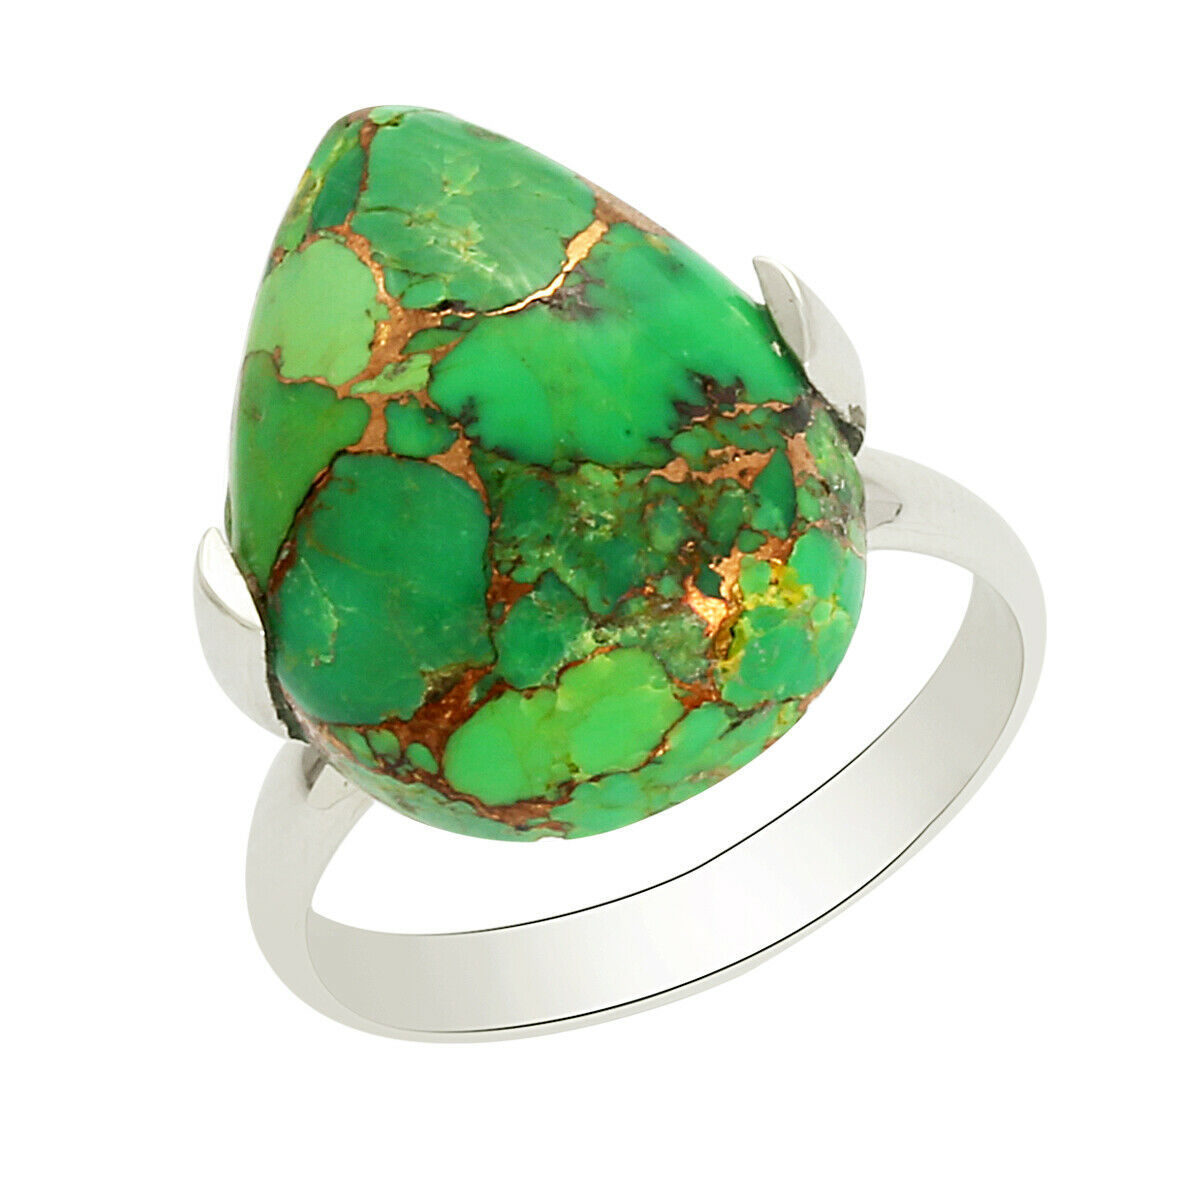 Primary image for 925 Sterling Silver 20.50 Ct Green Turquoise Gemstone Women HANDCRAFTED Ring